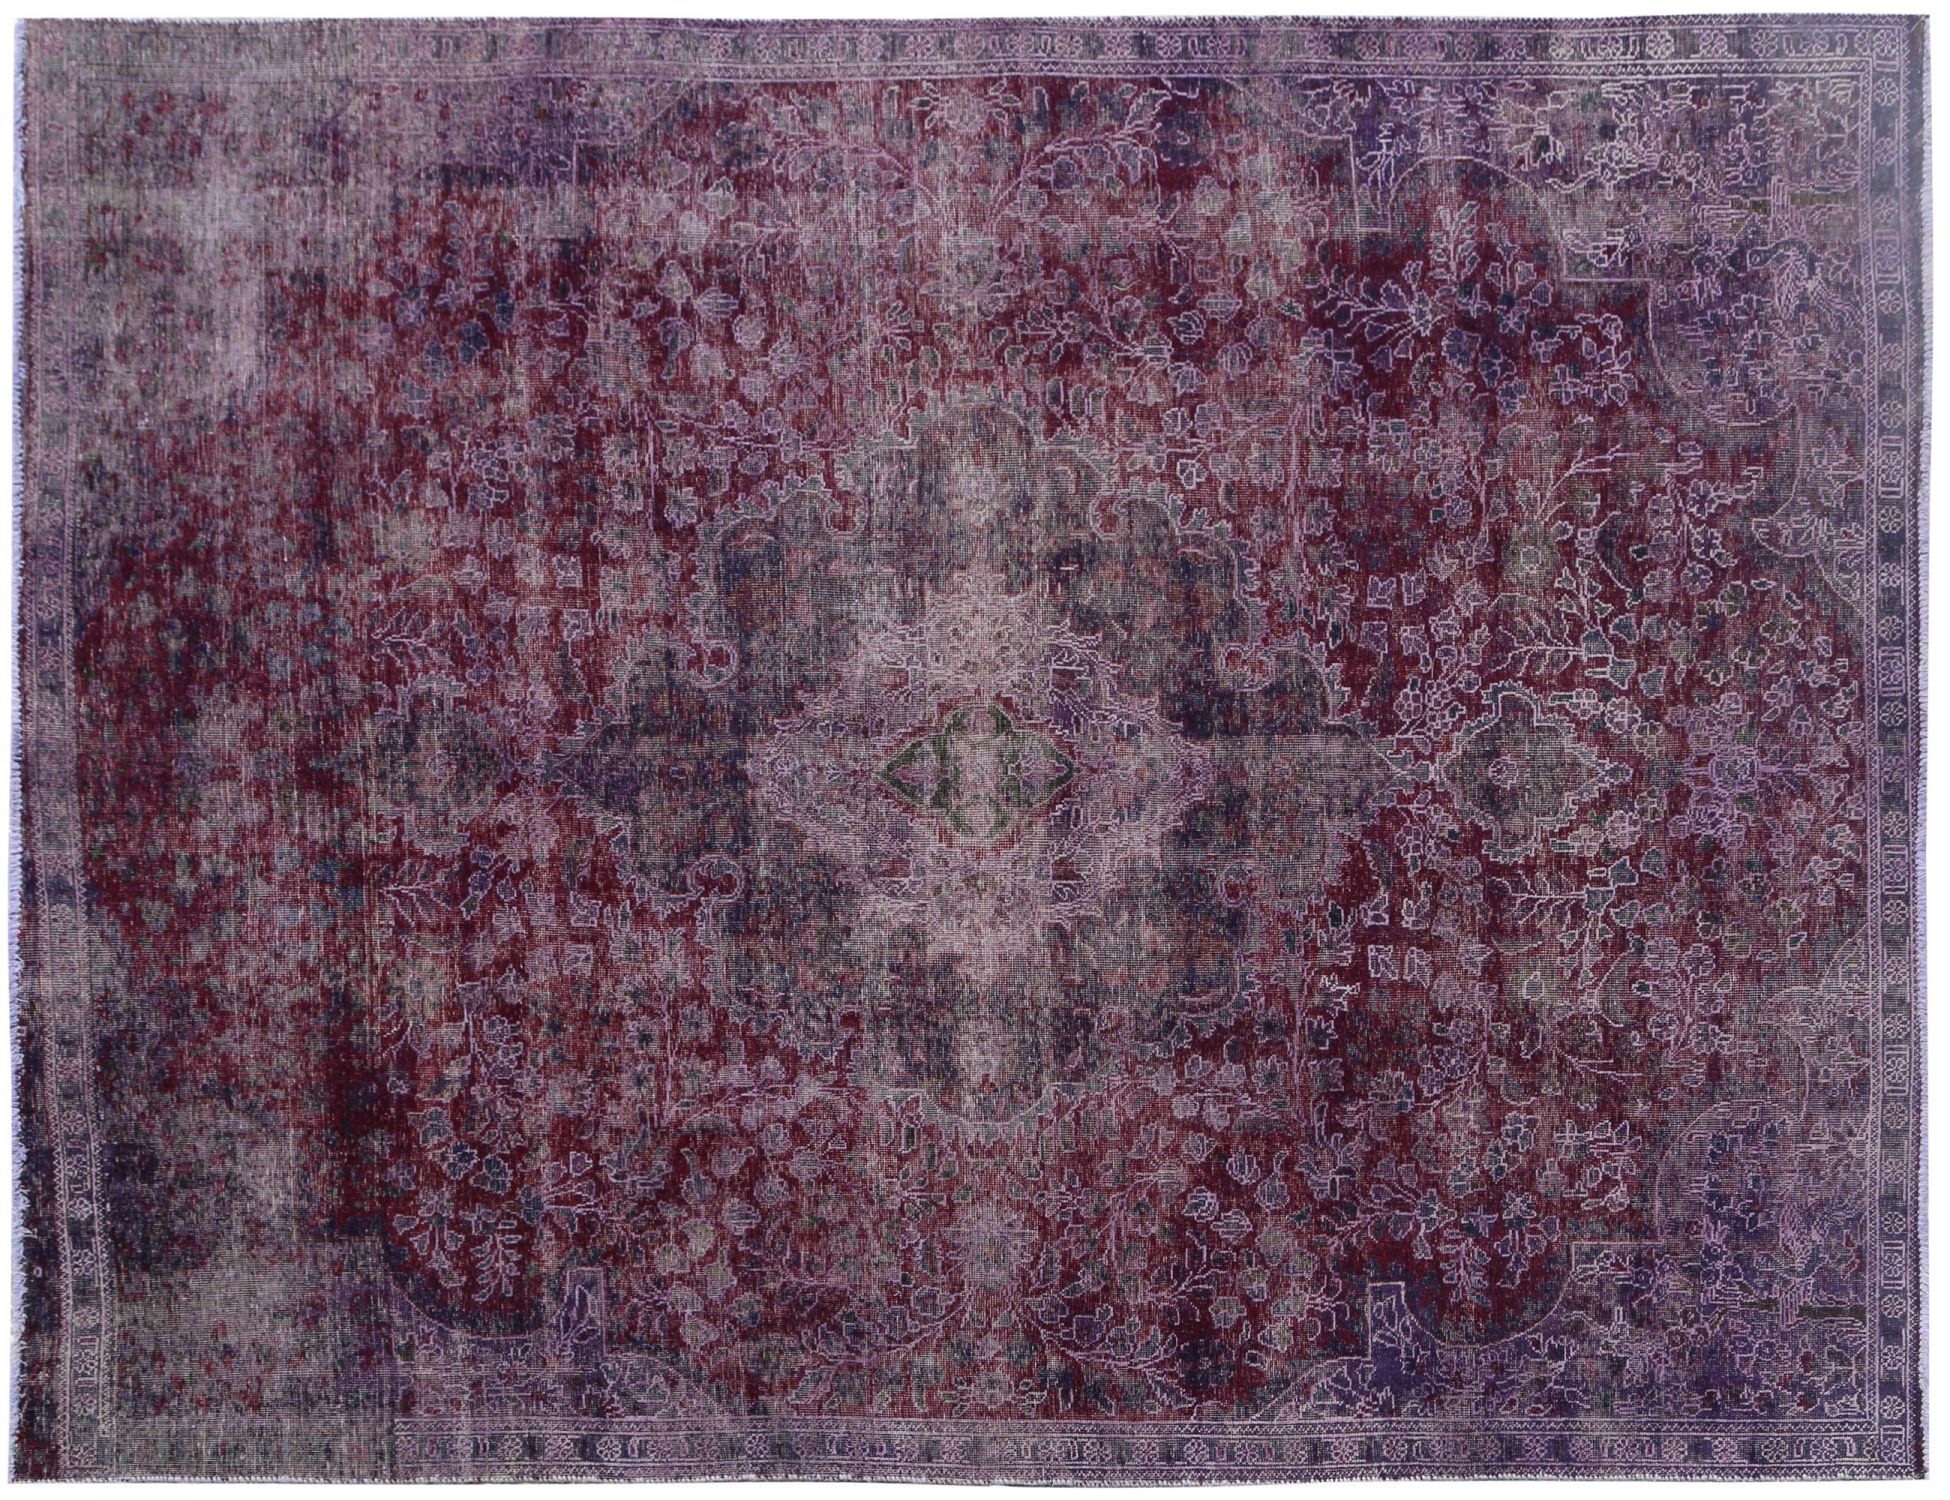 Vintage Carpet  purple <br/>328 x 230 cm